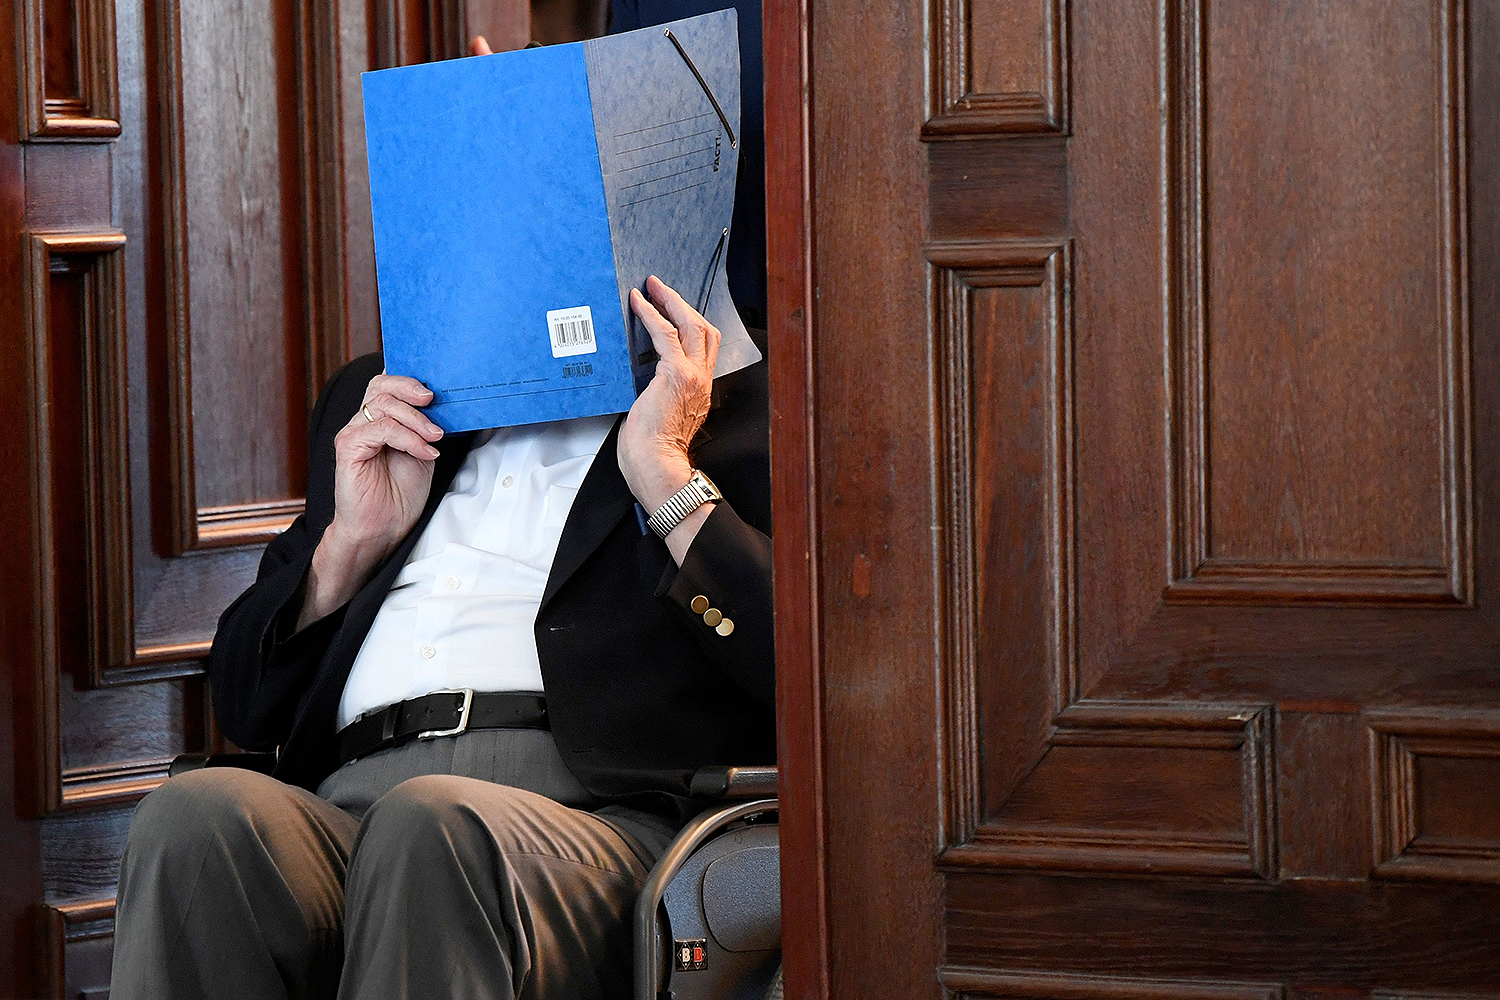 Bruno Dey, a former SS watchman at the Stutthof concentration camp, hides his face behind a folder as he leaves in a wheelchair after the verdict in his trial in Hamburg, Germany, on July 23. The 93-year-old former Nazi concentration camp guard was handed a suspended sentence of two years in prison as the court found him guilty of complicity in World War II atrocities. FABIAN BIMMER/POOL/AFP via Getty Images